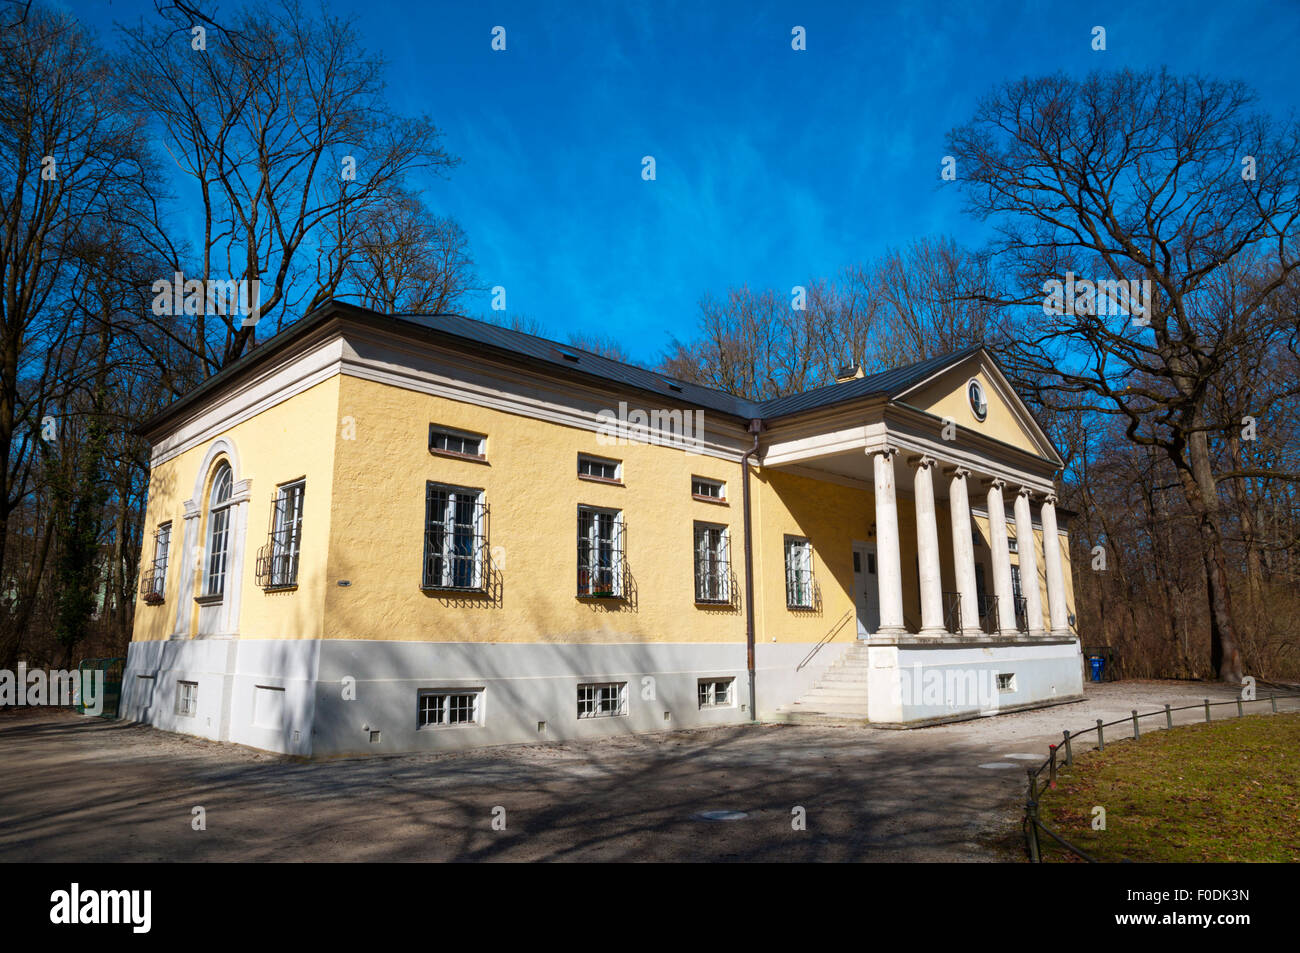 Rumford-Saal (1791), building in Palladian style, Englischer Garten, park, central Munich, Bavaria, Germany - Stock Image